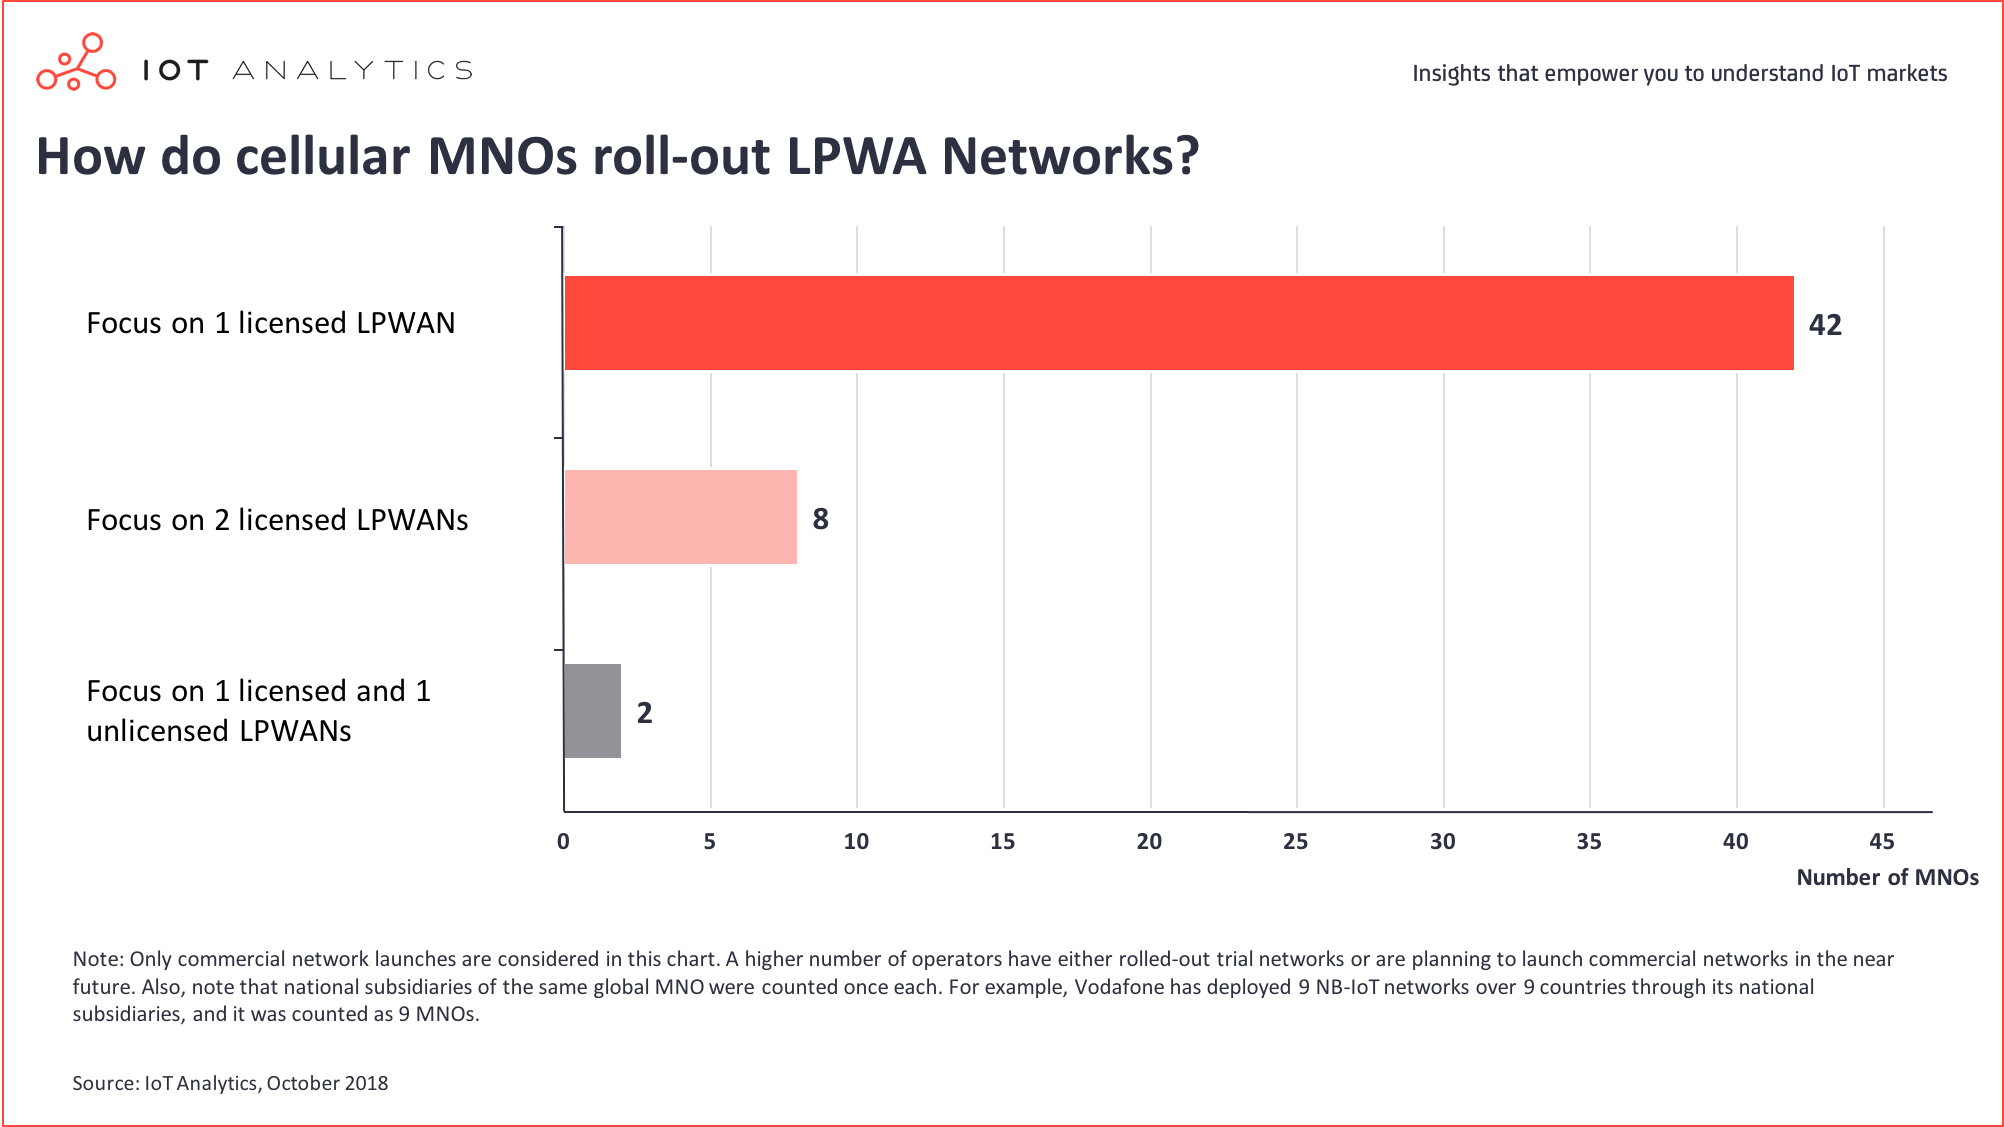 How do cellular MNOs roll-out LPWA Networks